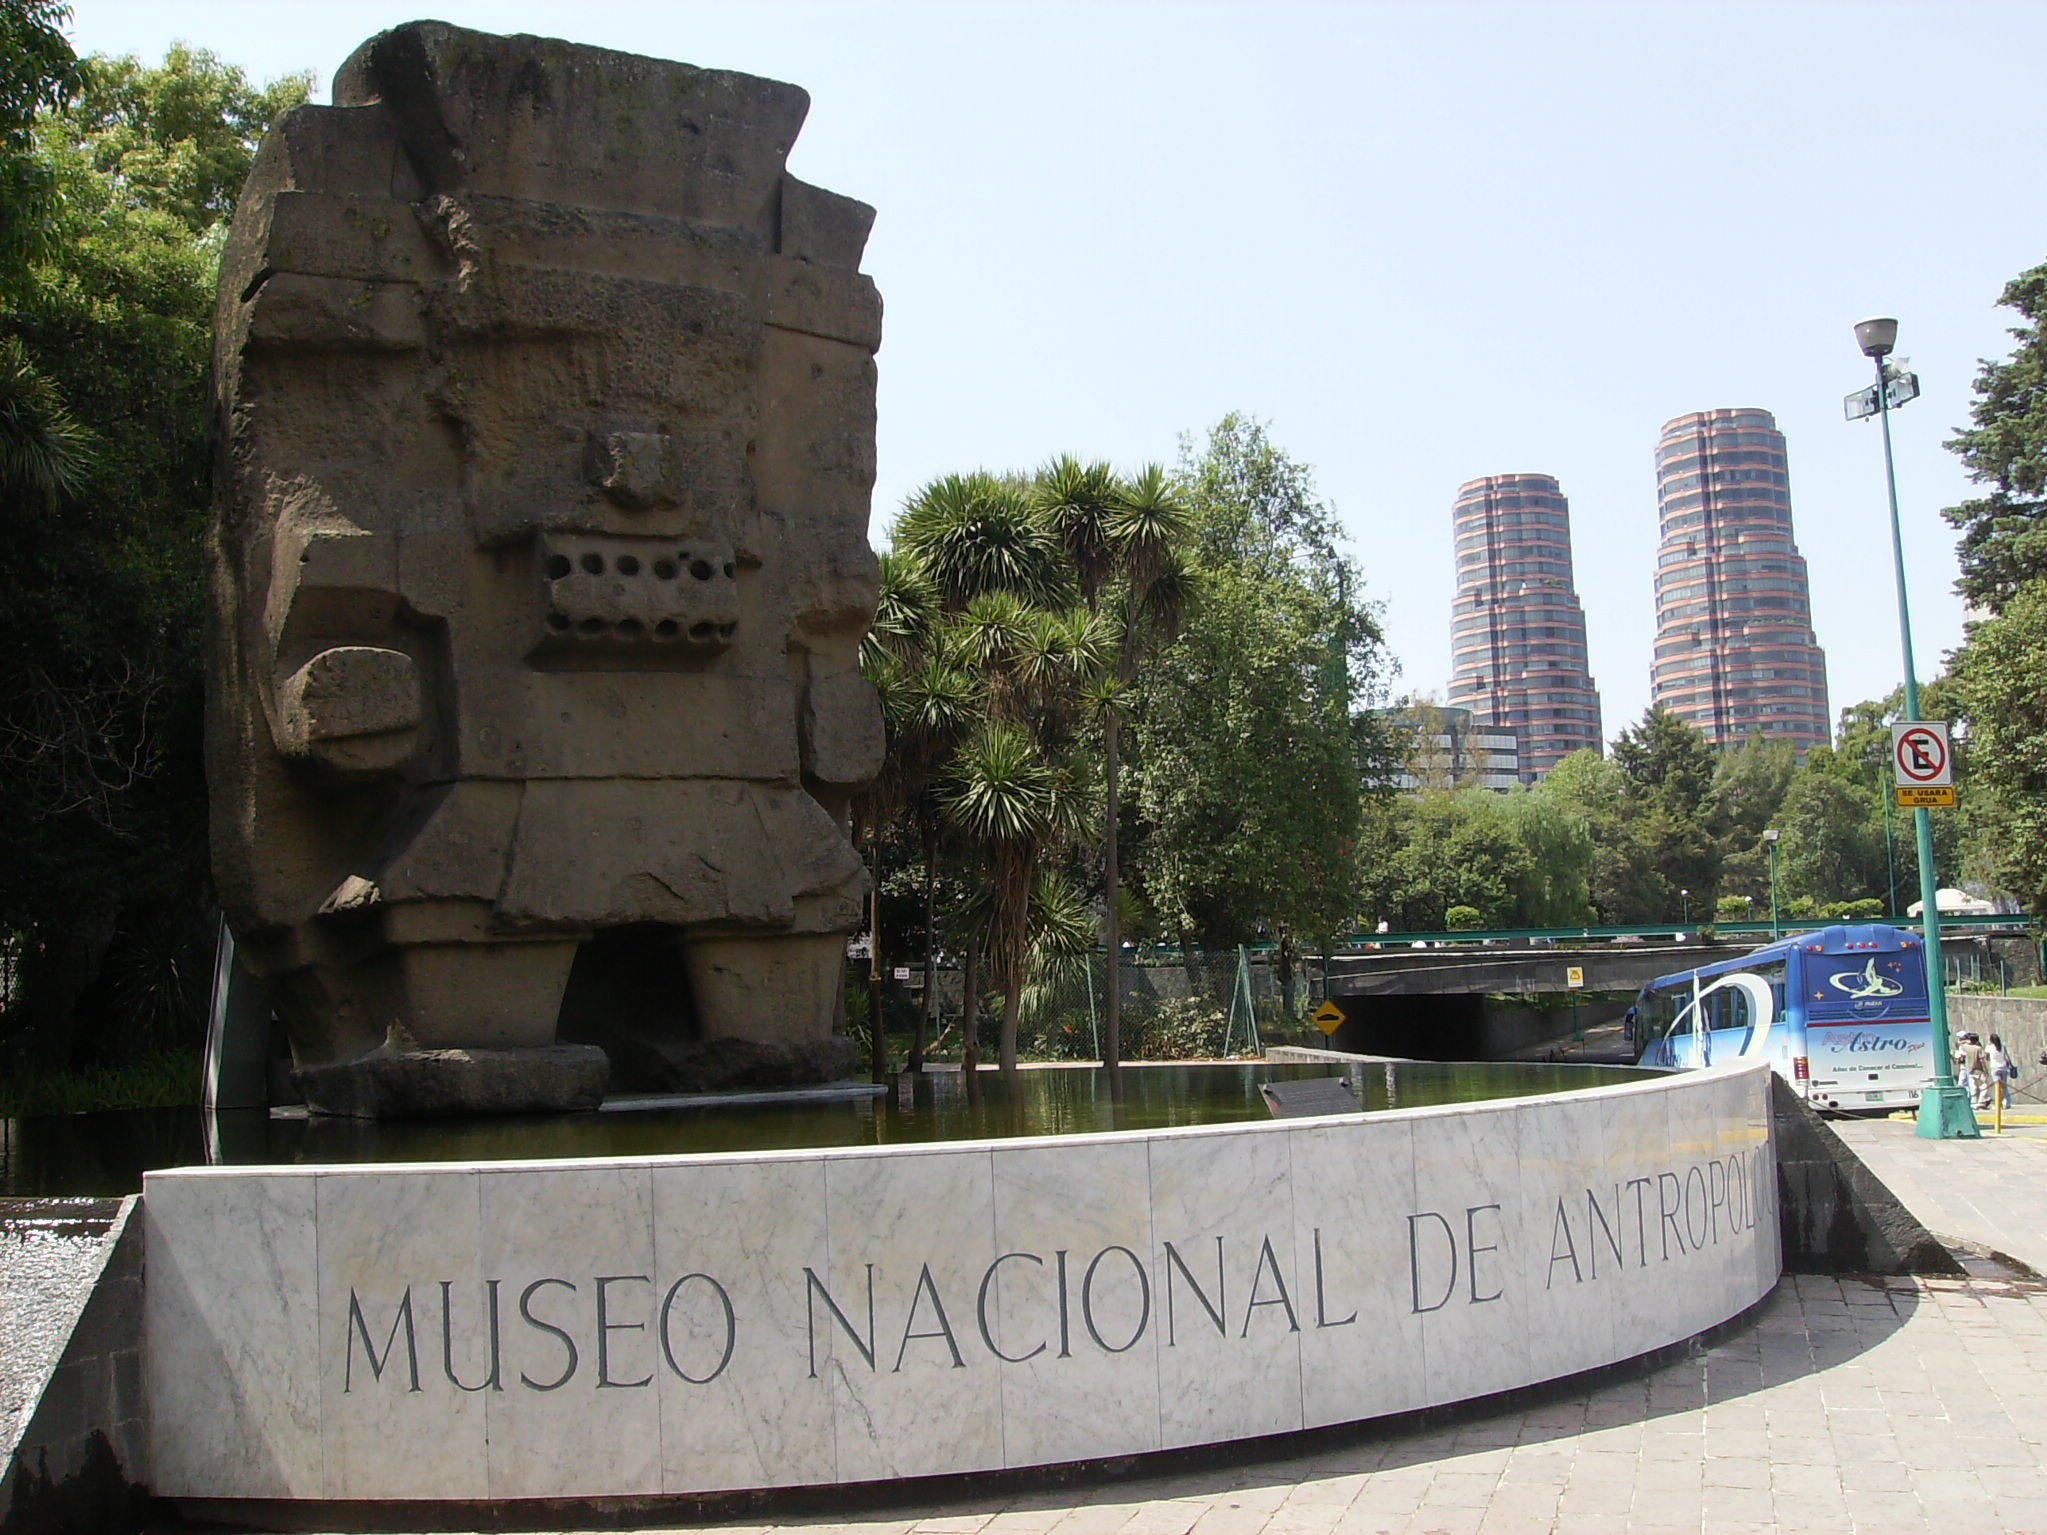 The Museo Nacional de Antropología in Mexico City houses incredible archaeological and anthropological finds, including art and artifacts from the Mayan, Aztec and Olmec civilizations. The building's distinctly modern design contrasts with the historic findings inside.